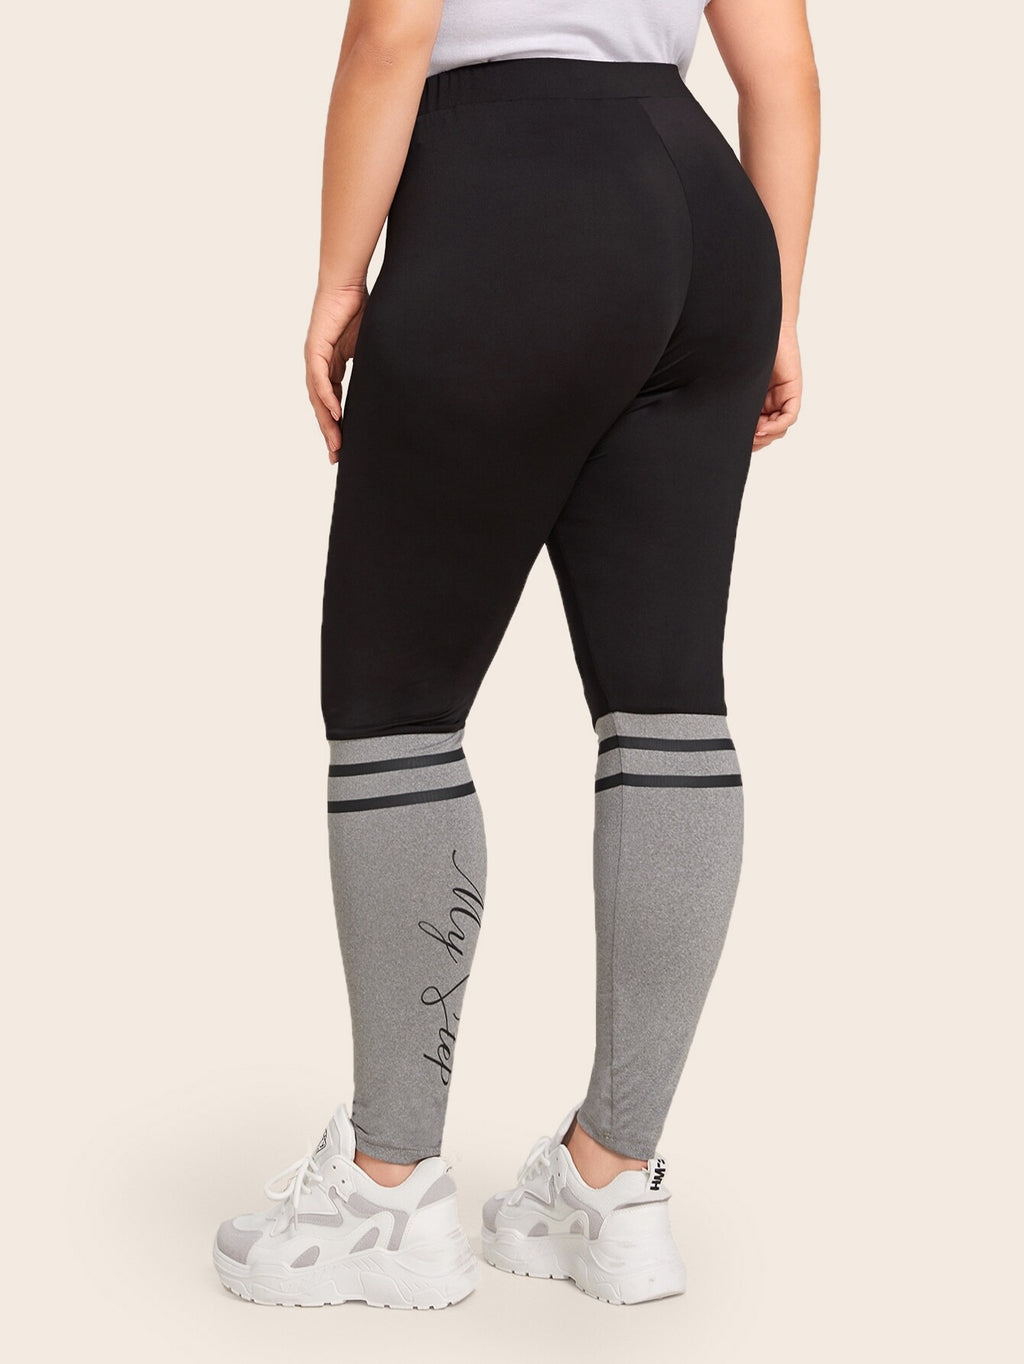 Plus Size Striped and Letter Graphic Heather Grey Leggings